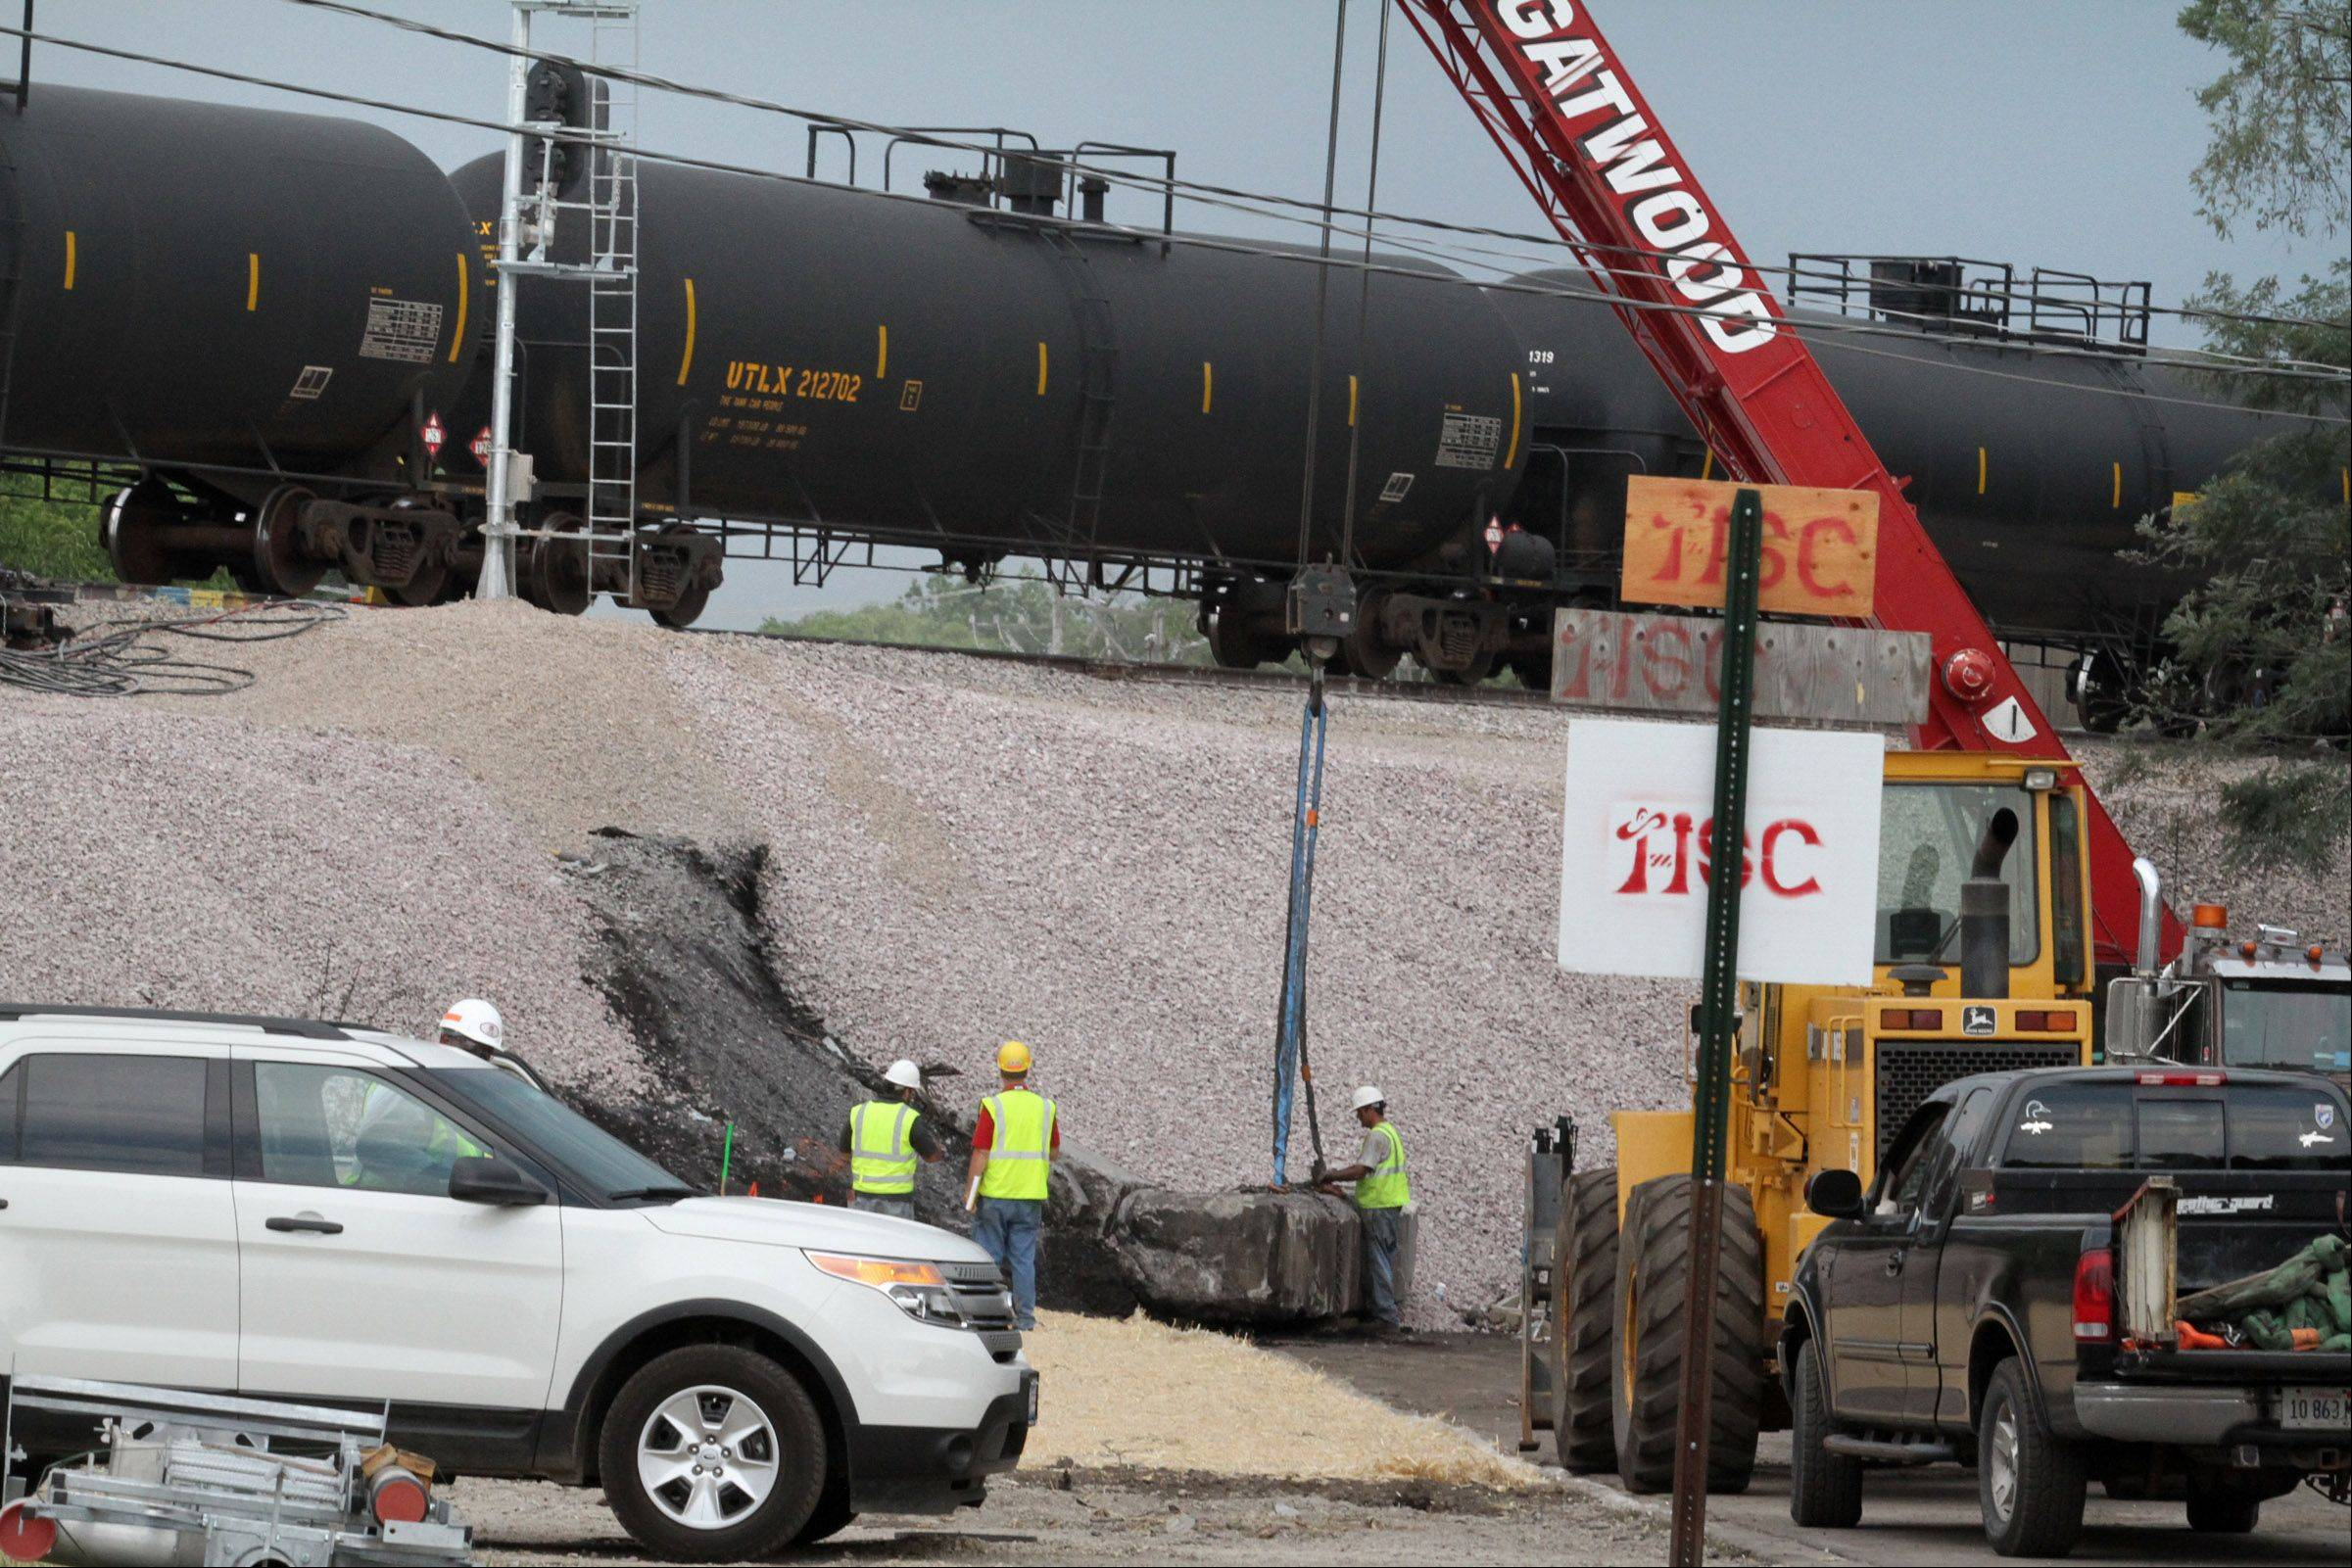 Work continued in Glenview Friday where the railroad bridge over Shermer Road in Glenview collapsed following a Union Pacific train derailment on July 4.